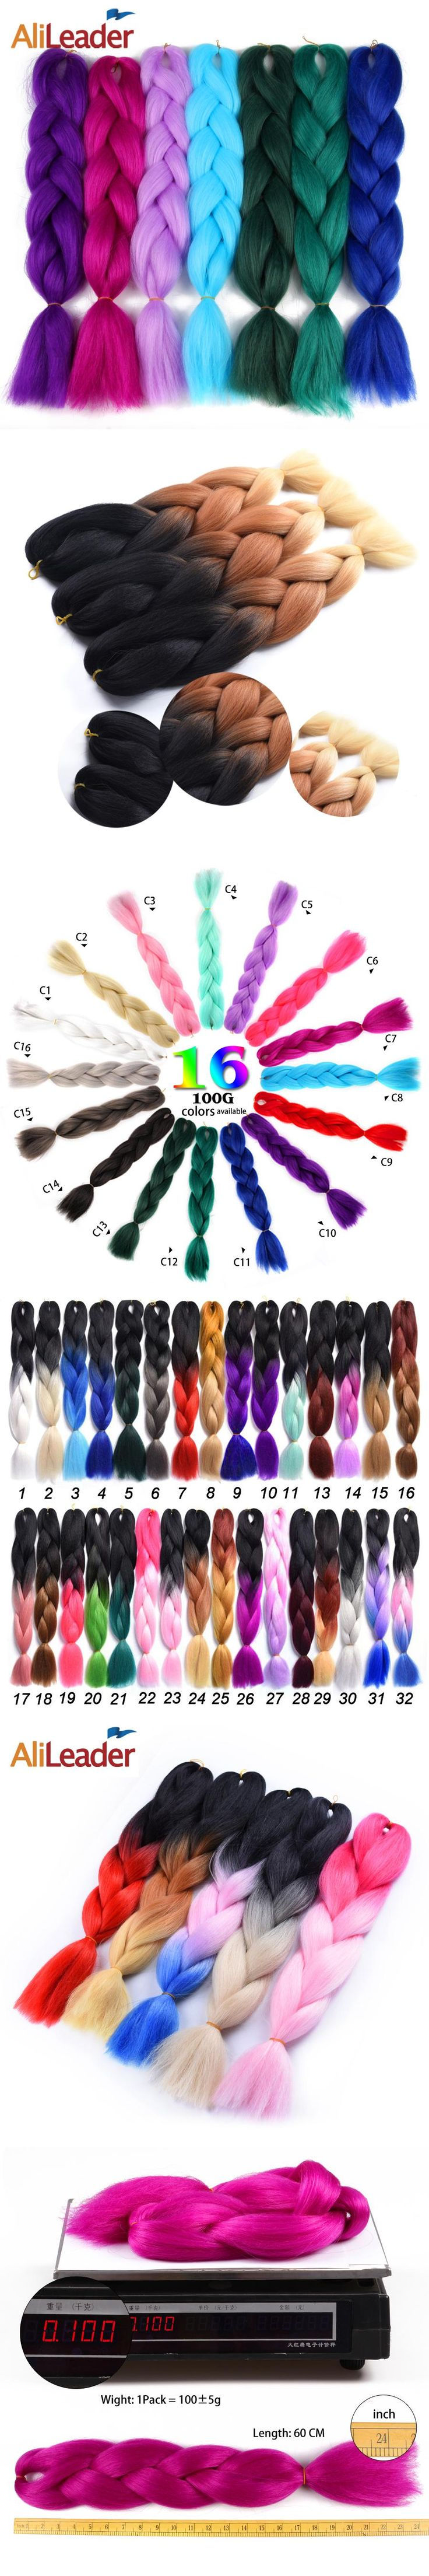 """AliLeader Pure Color And Ombre Kanekalon Braiding Hair 1B 2 4 27 33 613 99J Grey Synthetic Hair Jumbo Braids Extensions 24"""" 100G"""